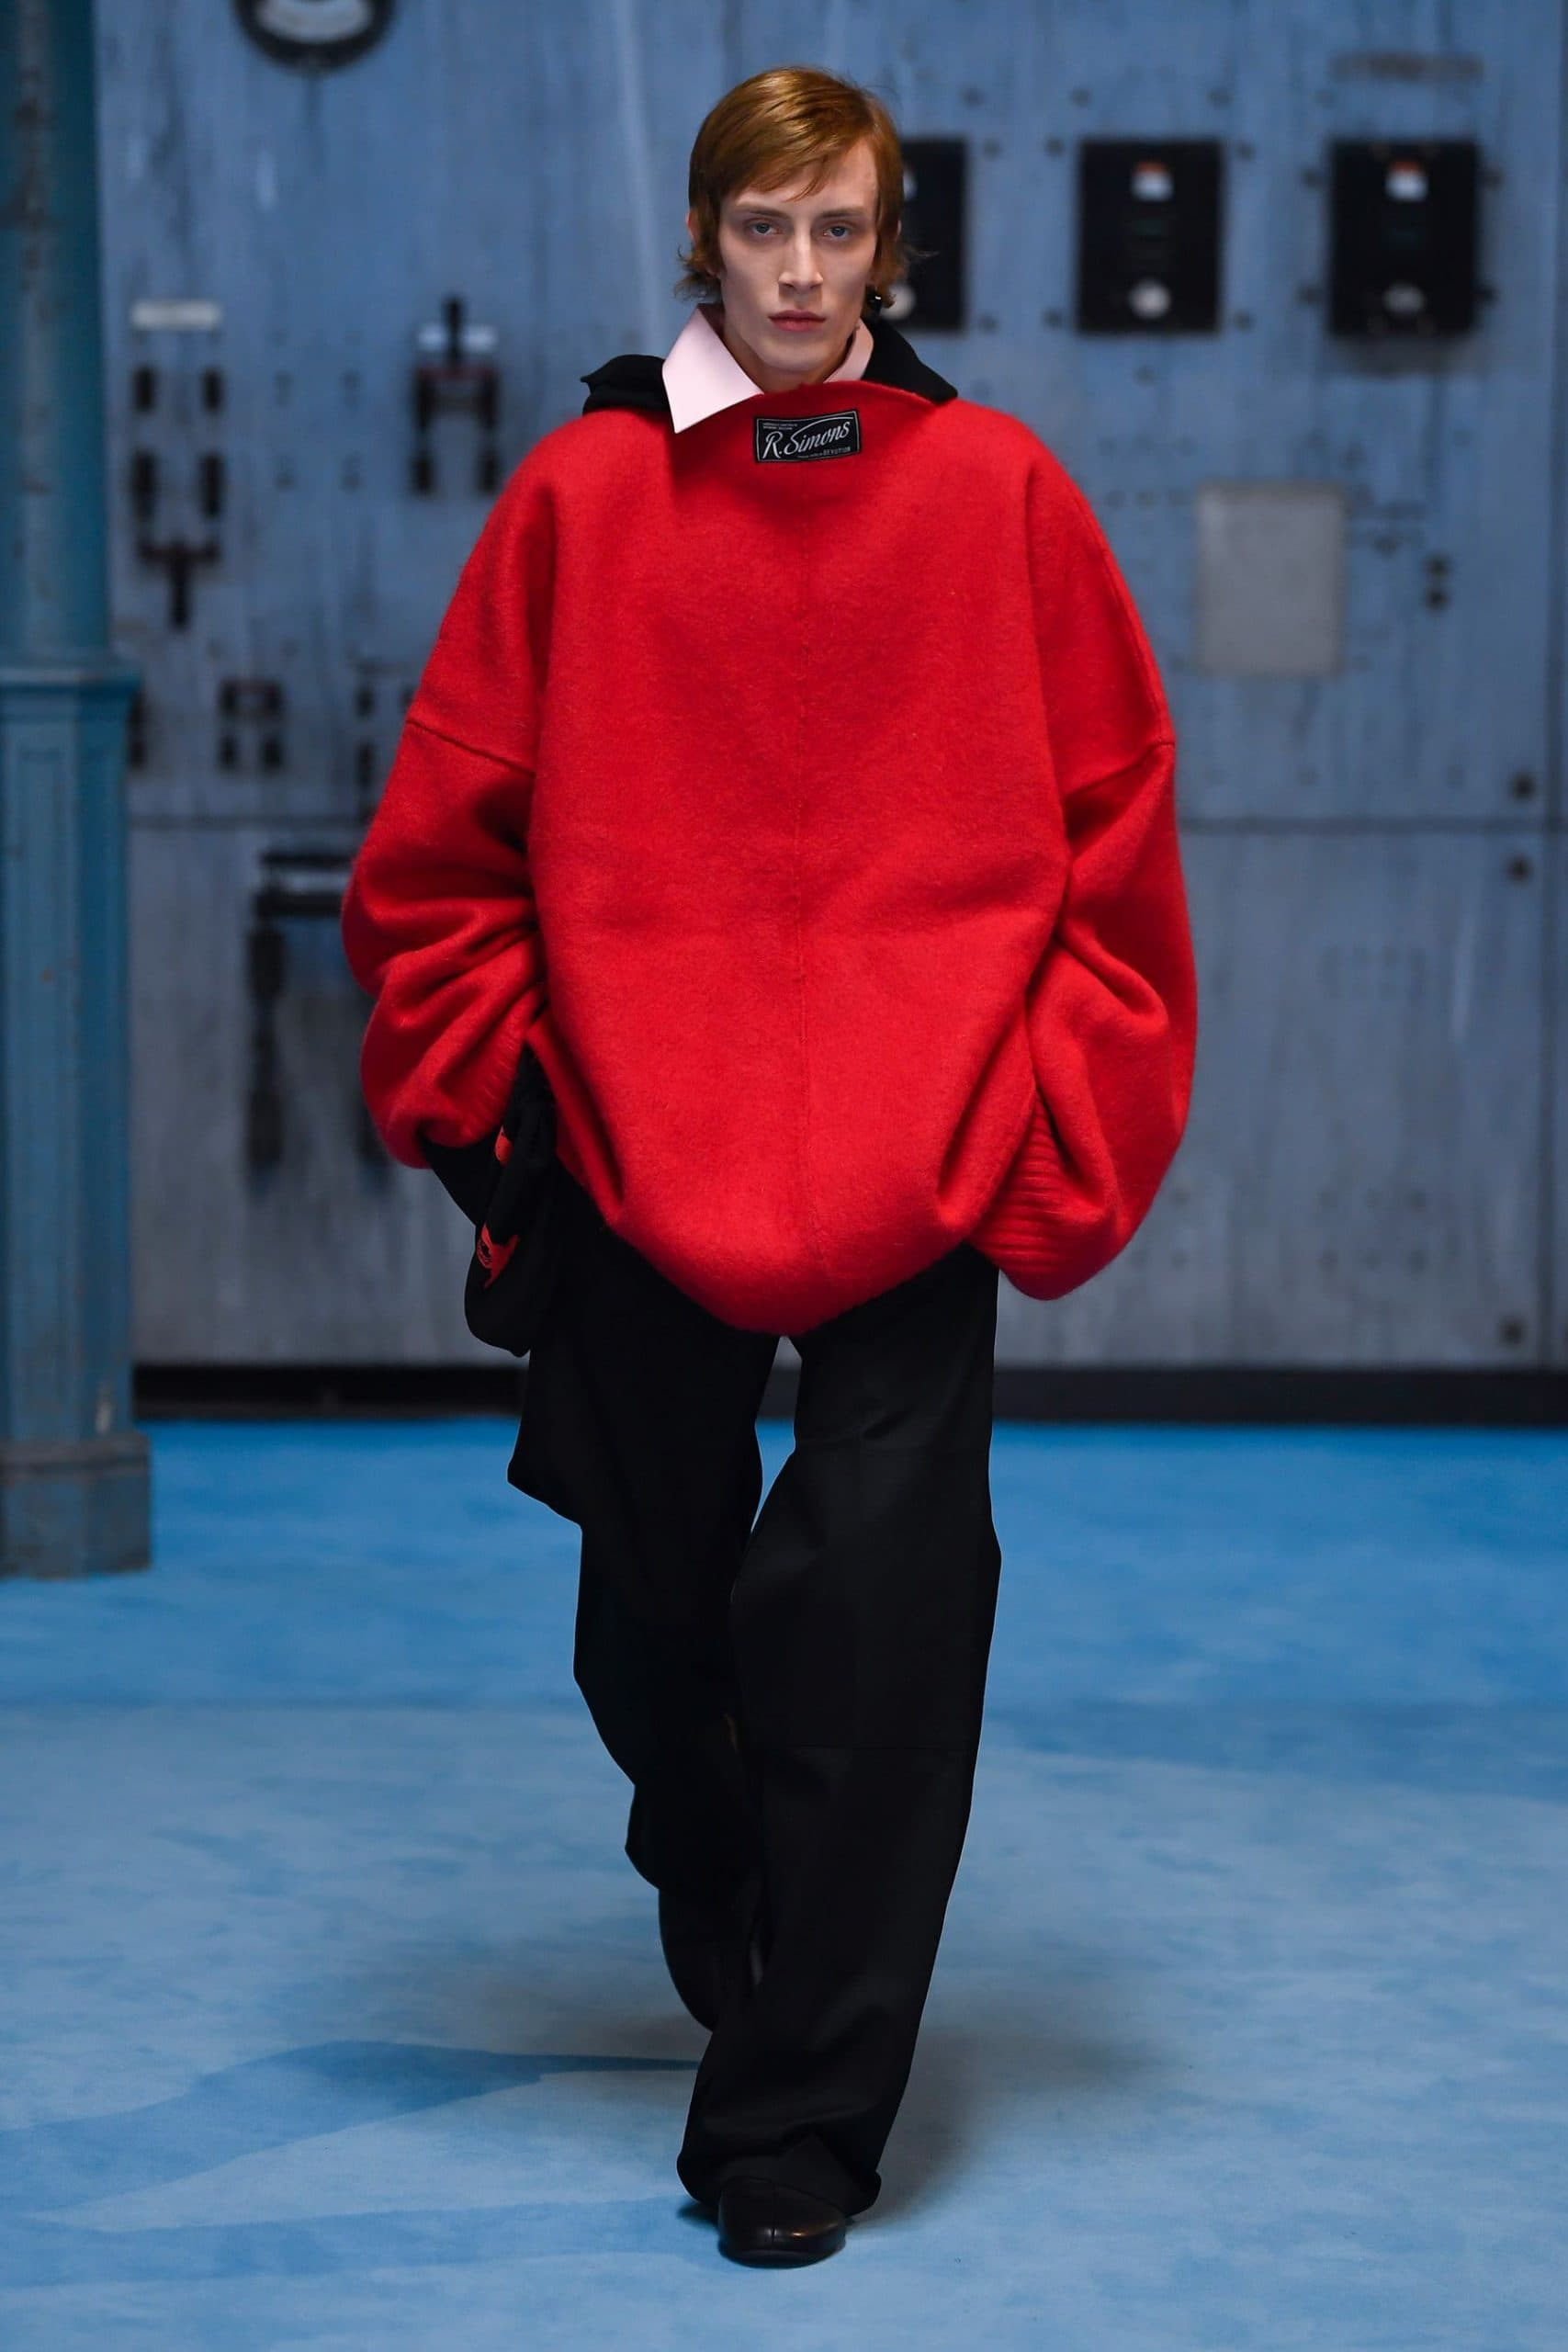 Primary Colors Fall 2021 Fashion Trend